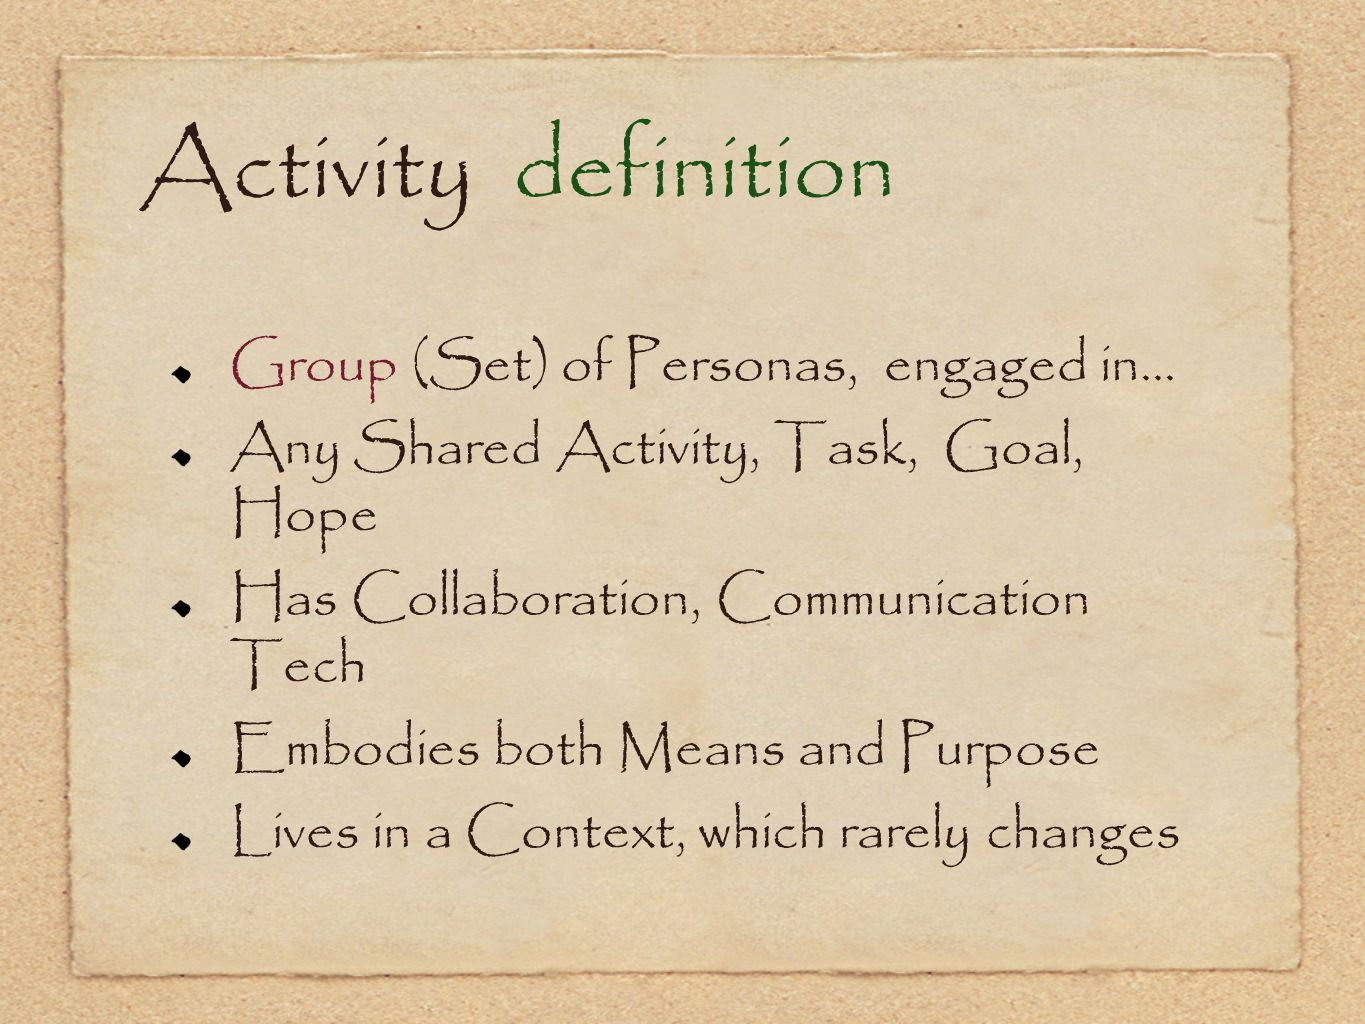 Activity definition Group (Set) of Personas, engaged in...